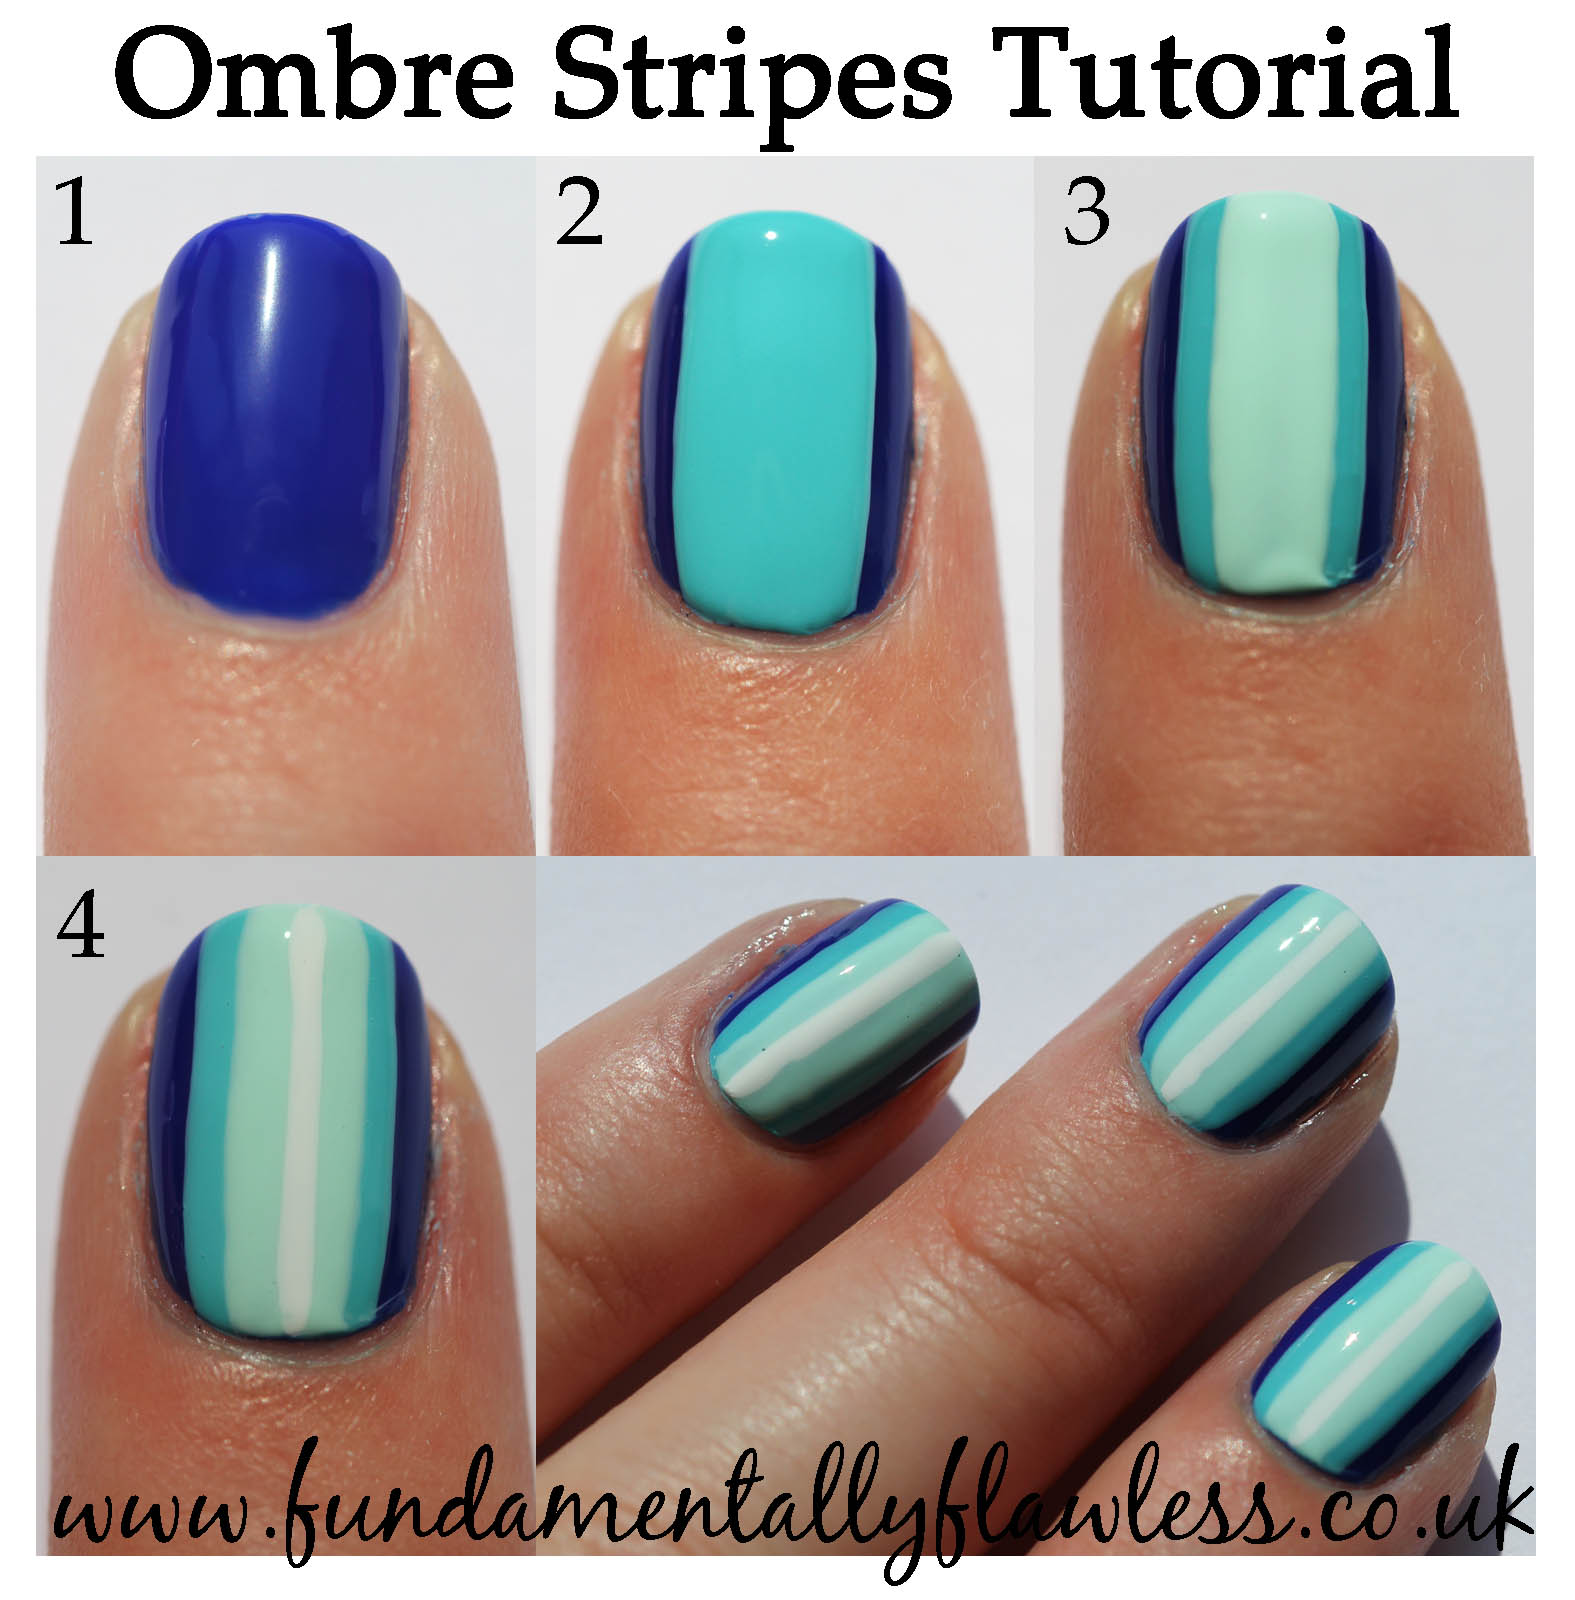 Stripe Nail Art: Fundamentally Flawless: Blue Ombre Stripes Nail Art Tutorial